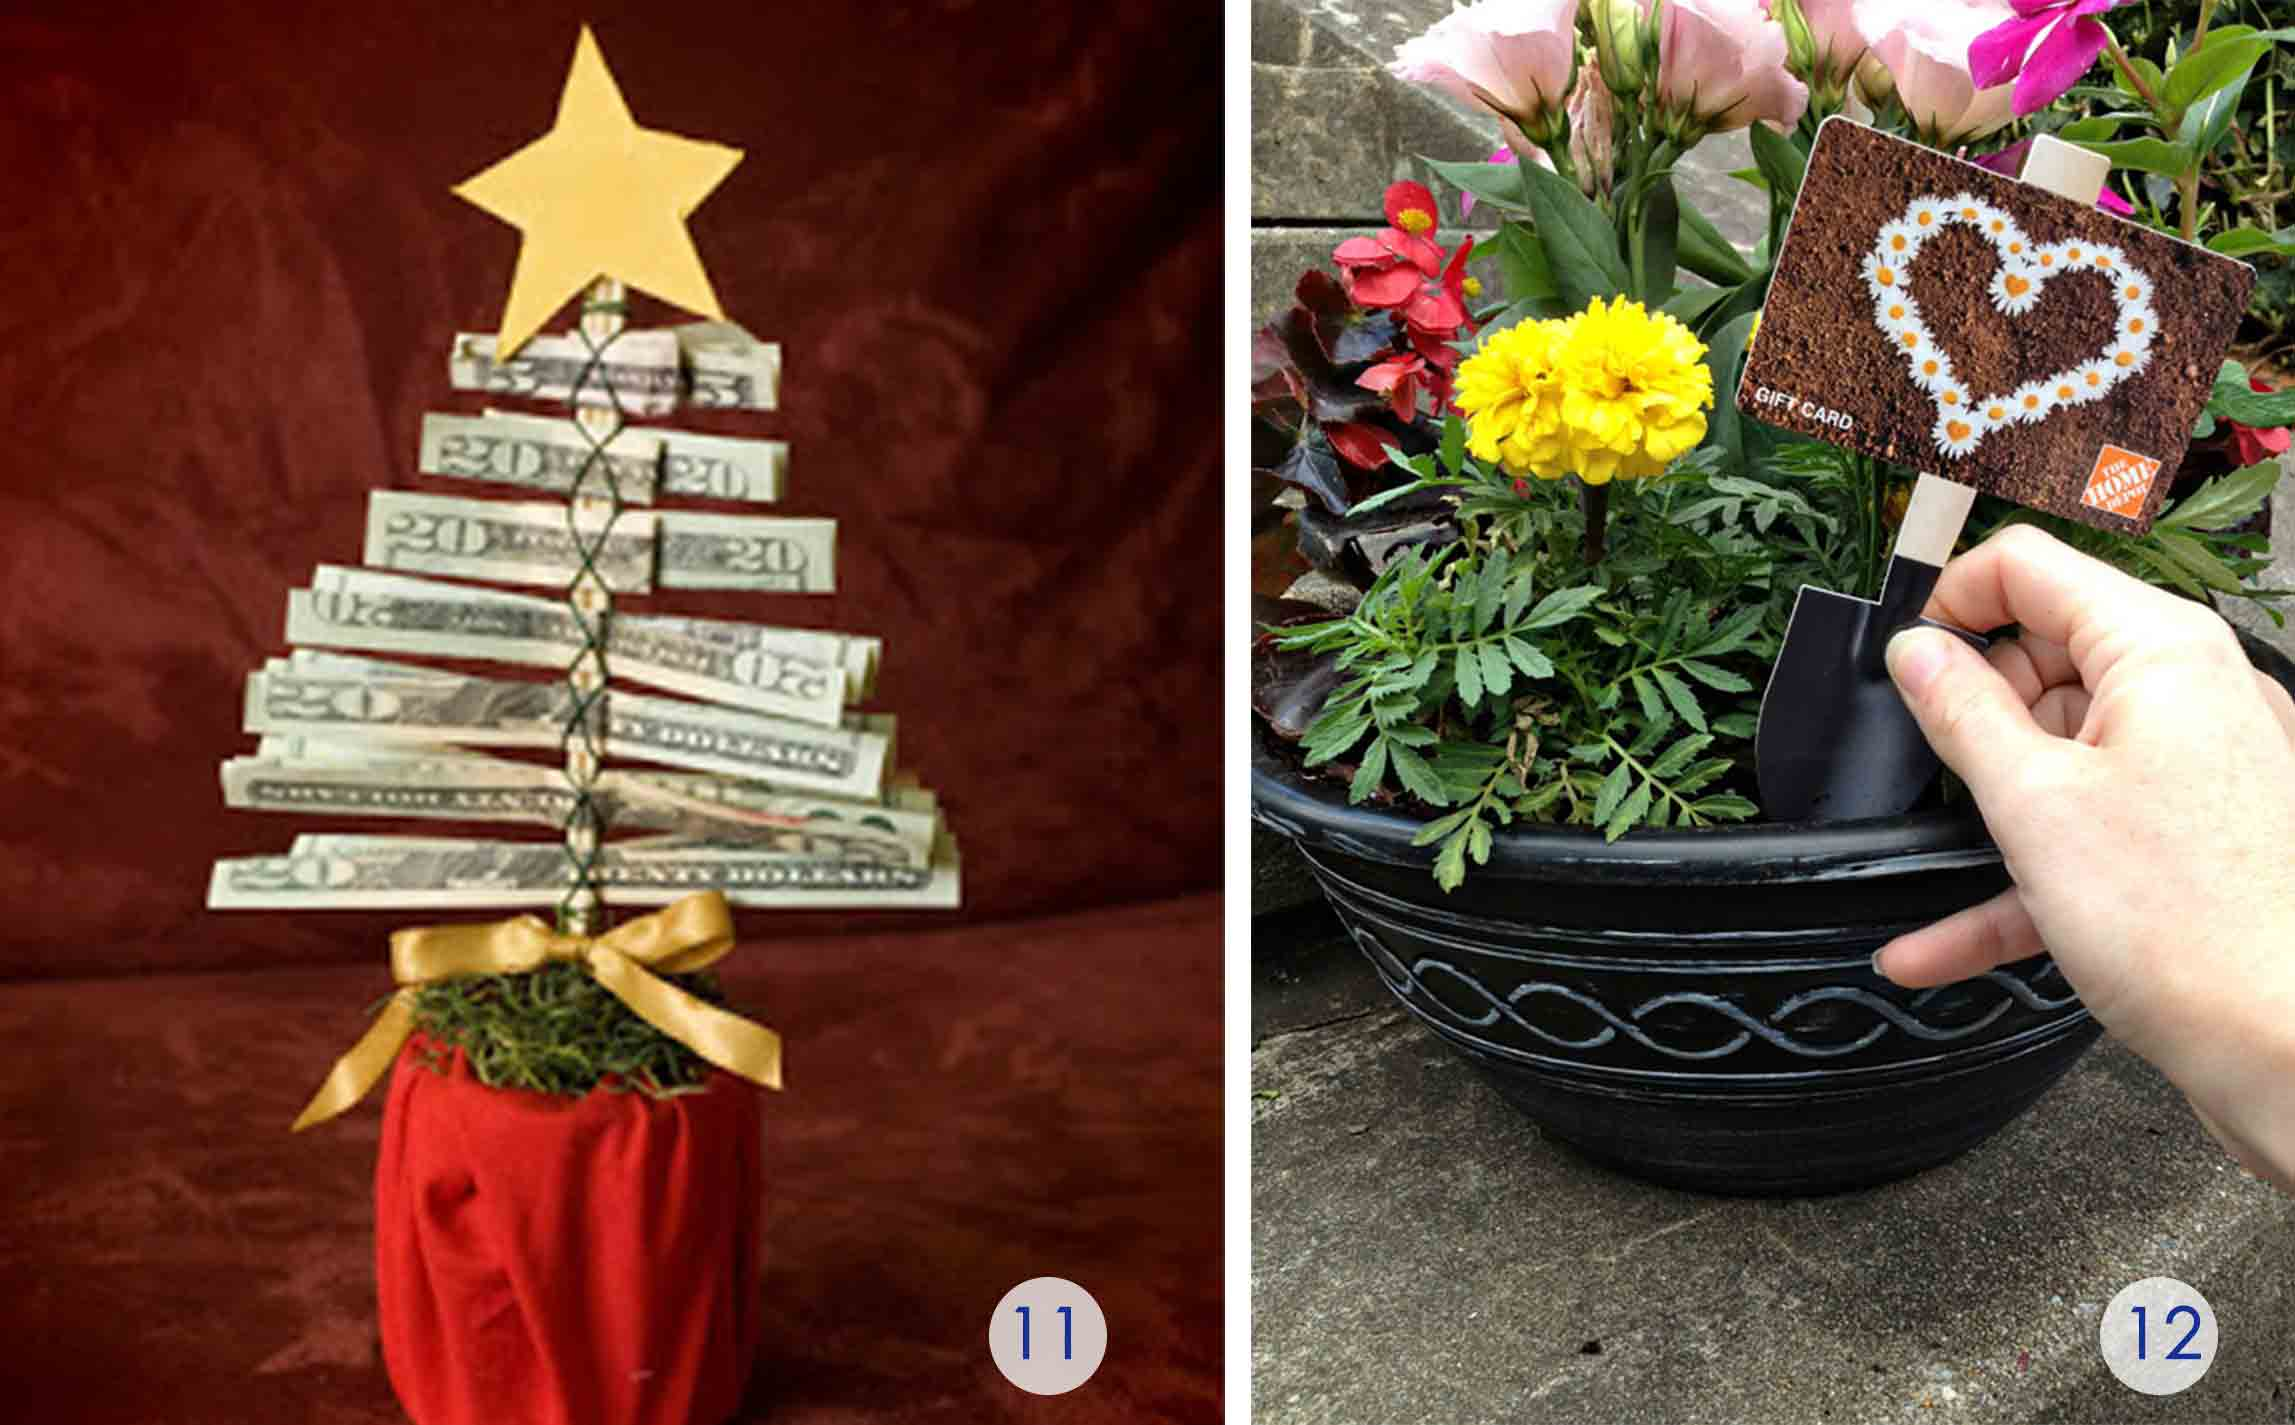 The Best Gift Card Tree And Gift Card Wreaths Ever!